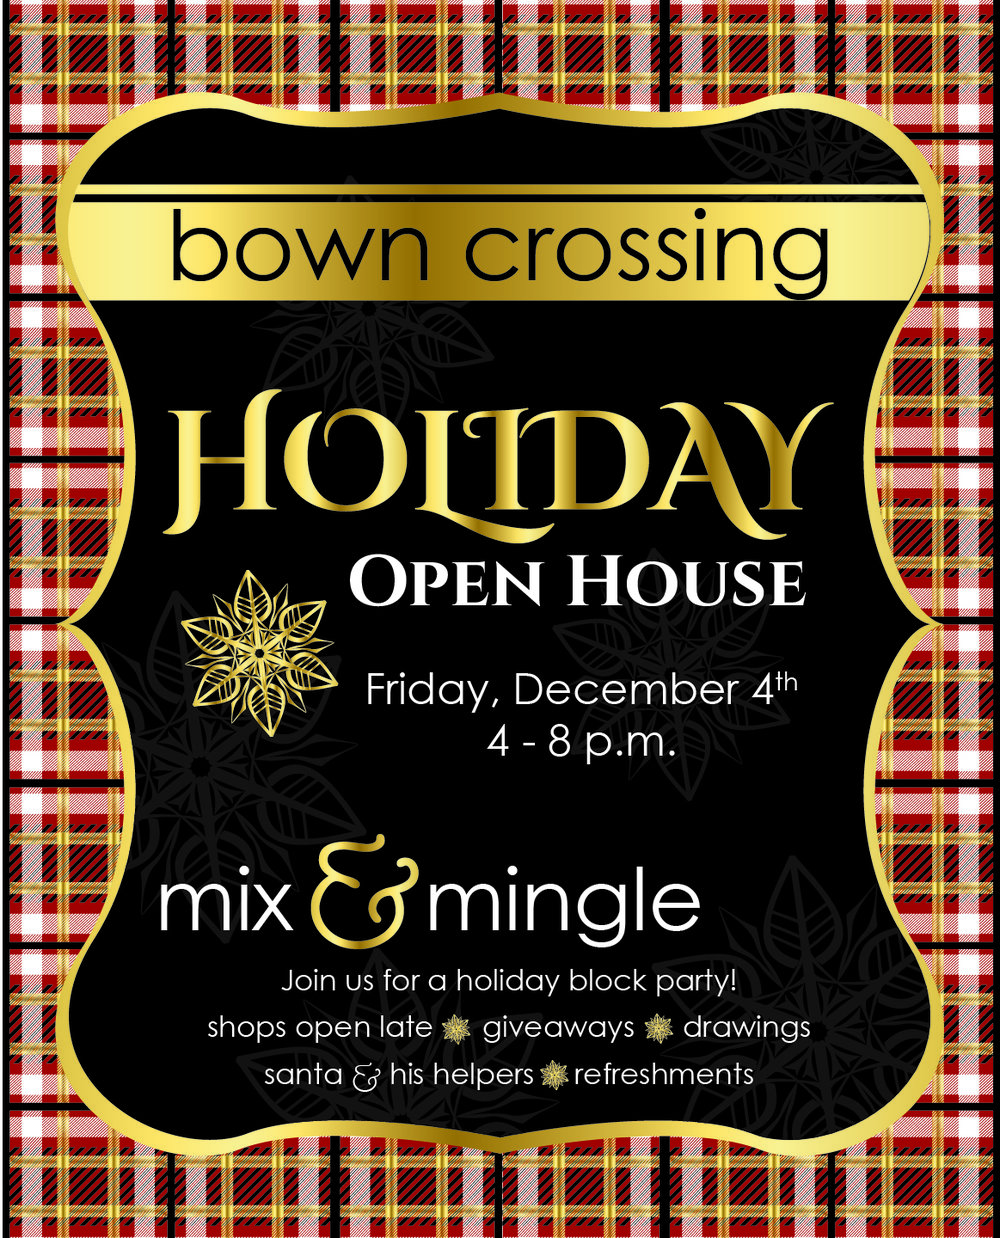 Bown Crossing Holiday Open House Ad-01-01.jpg